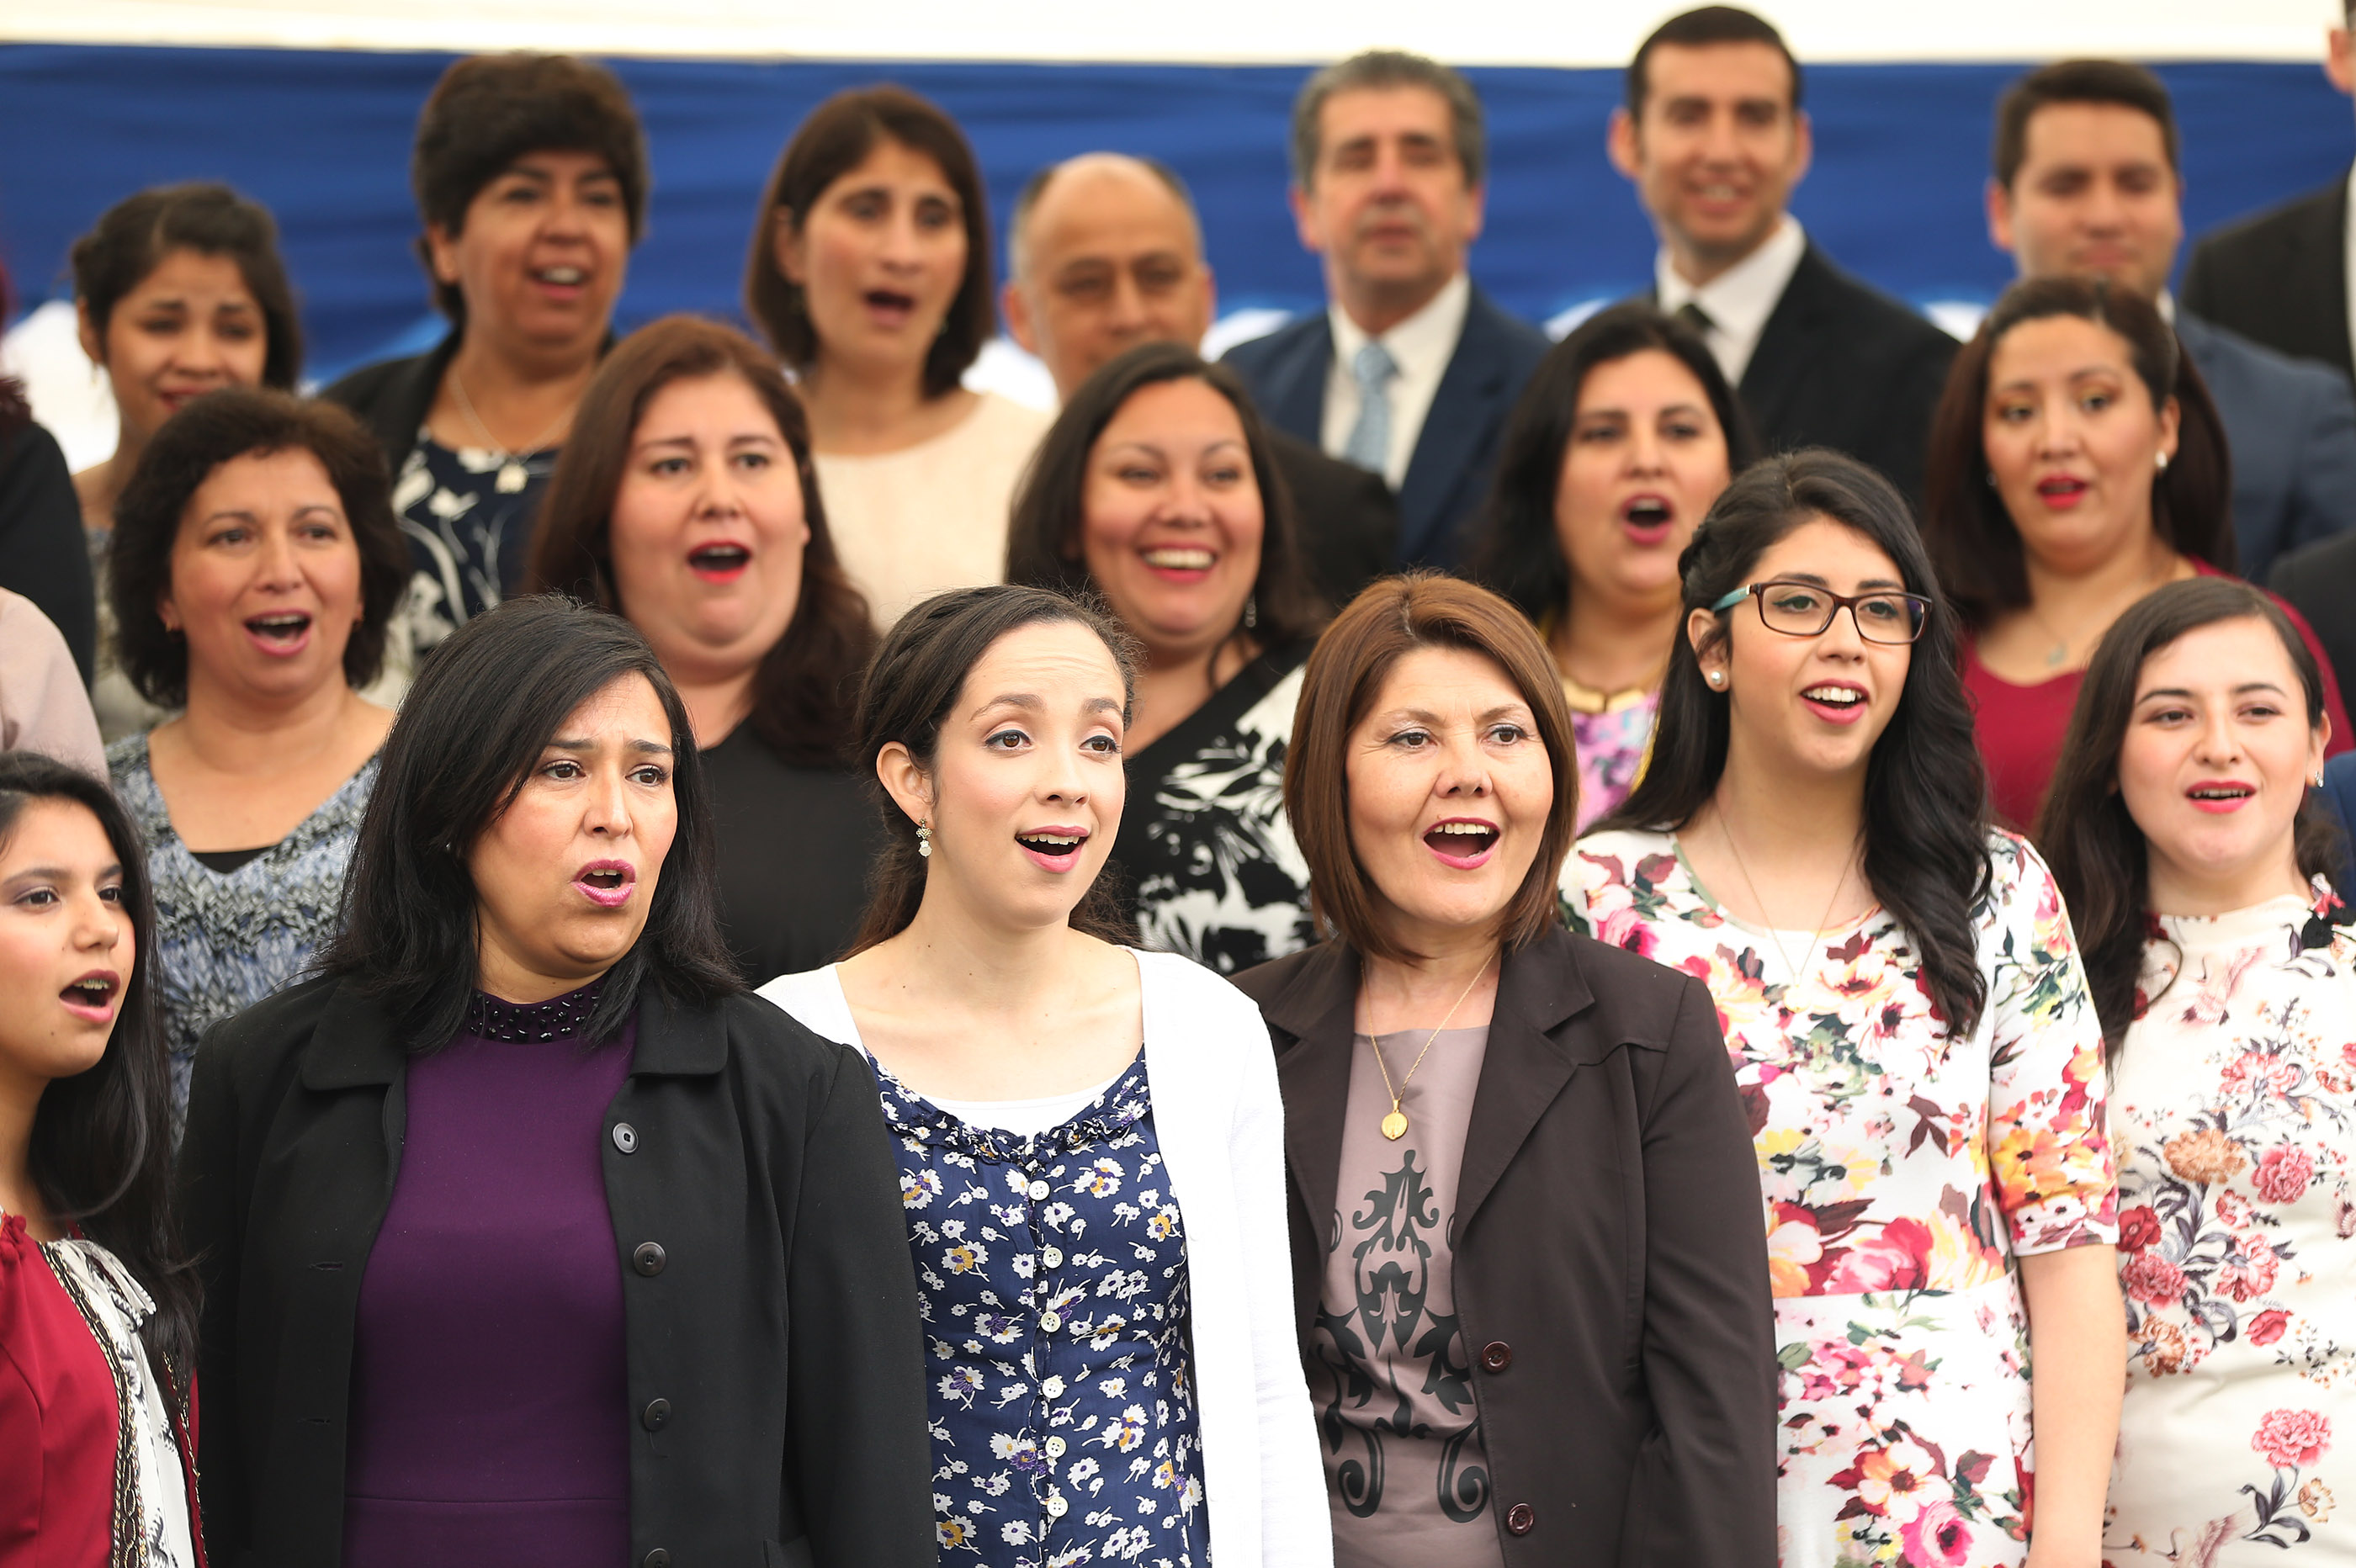 A choir sings during the dedication of the LDS Concepcion Chile Temple in Concepcion, Chile on Sunday, Oct. 28, 2018.